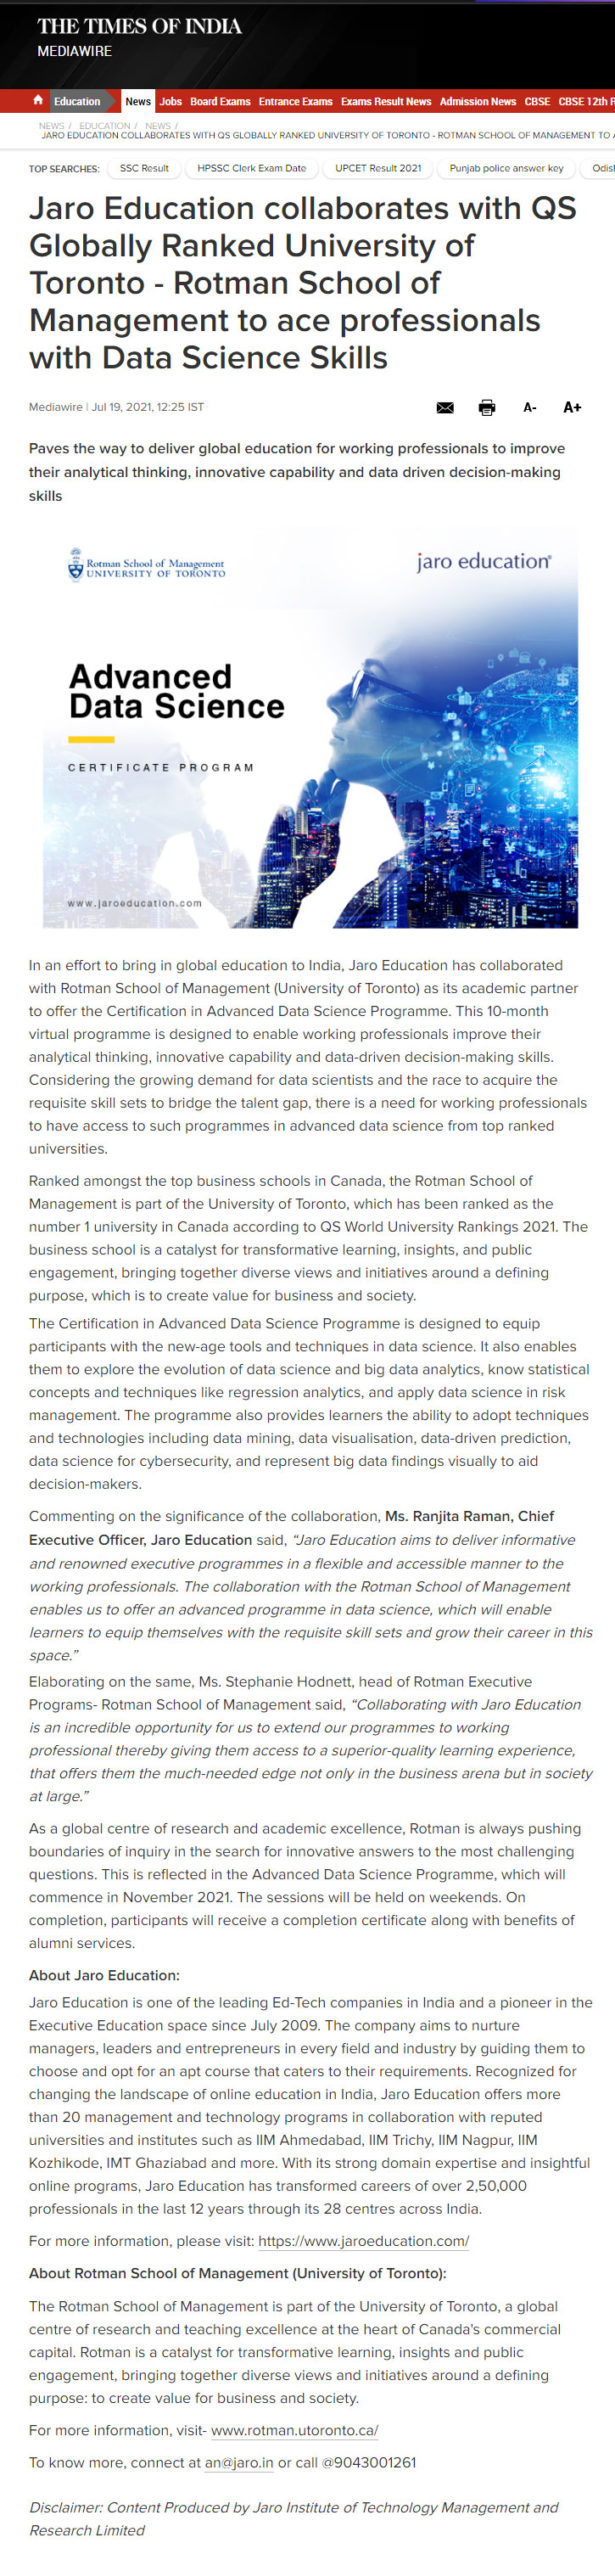 Rotman-School-of-Management-to-ace-professionals-with-Data-Science-Skills